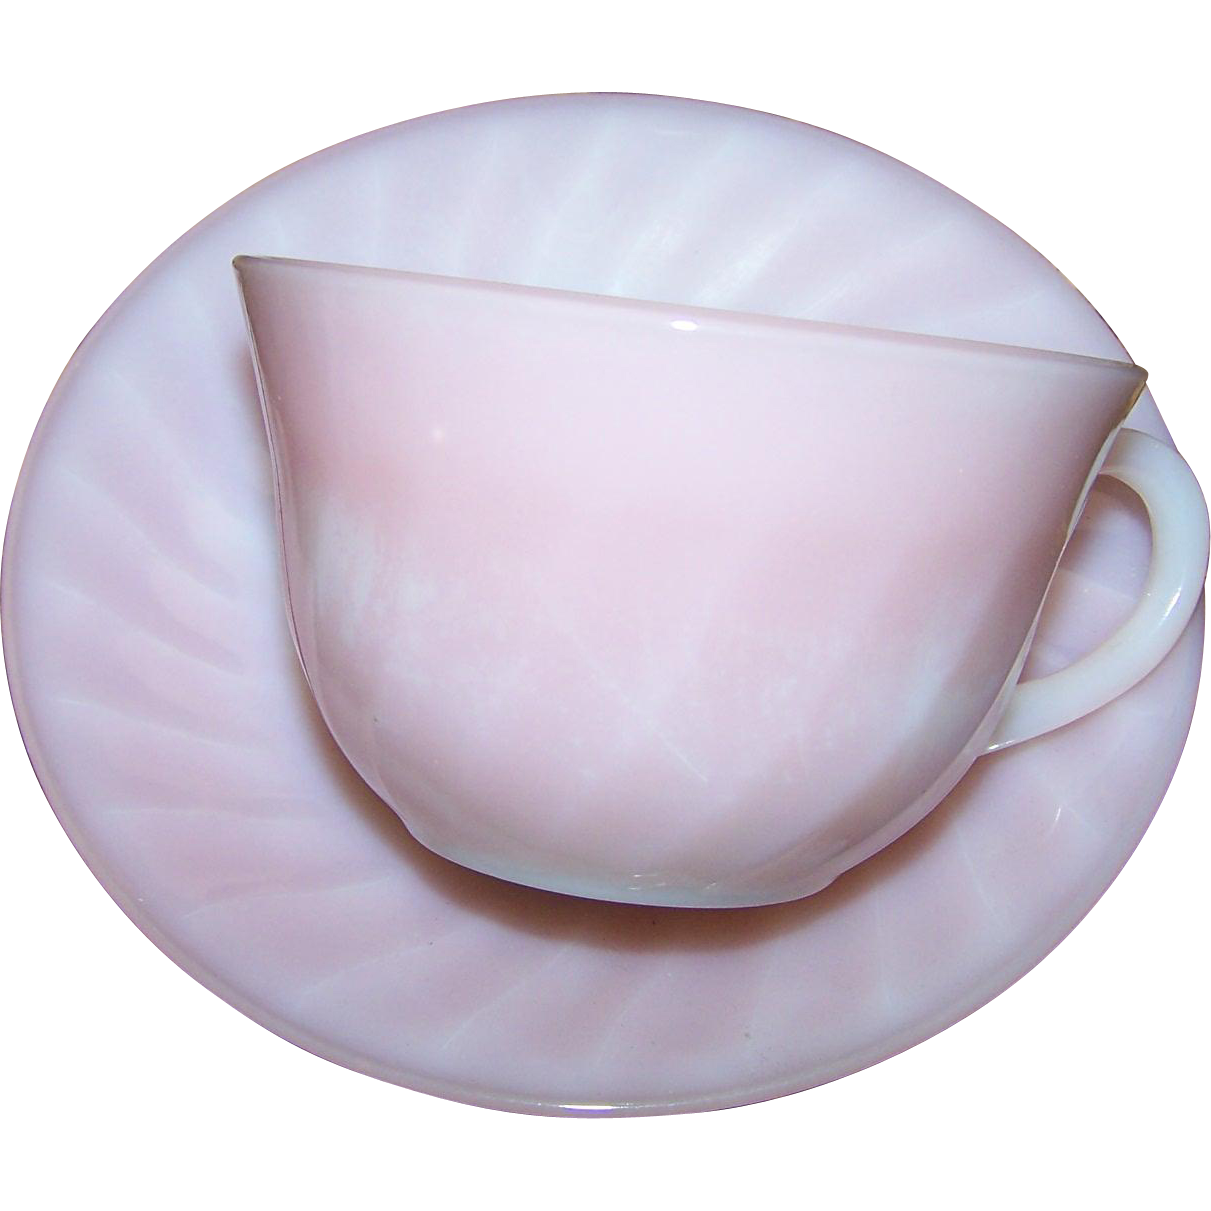 Pink Flamingo Swirl Fire King Oven Ware Glass Tea Cup Saucer Set USA